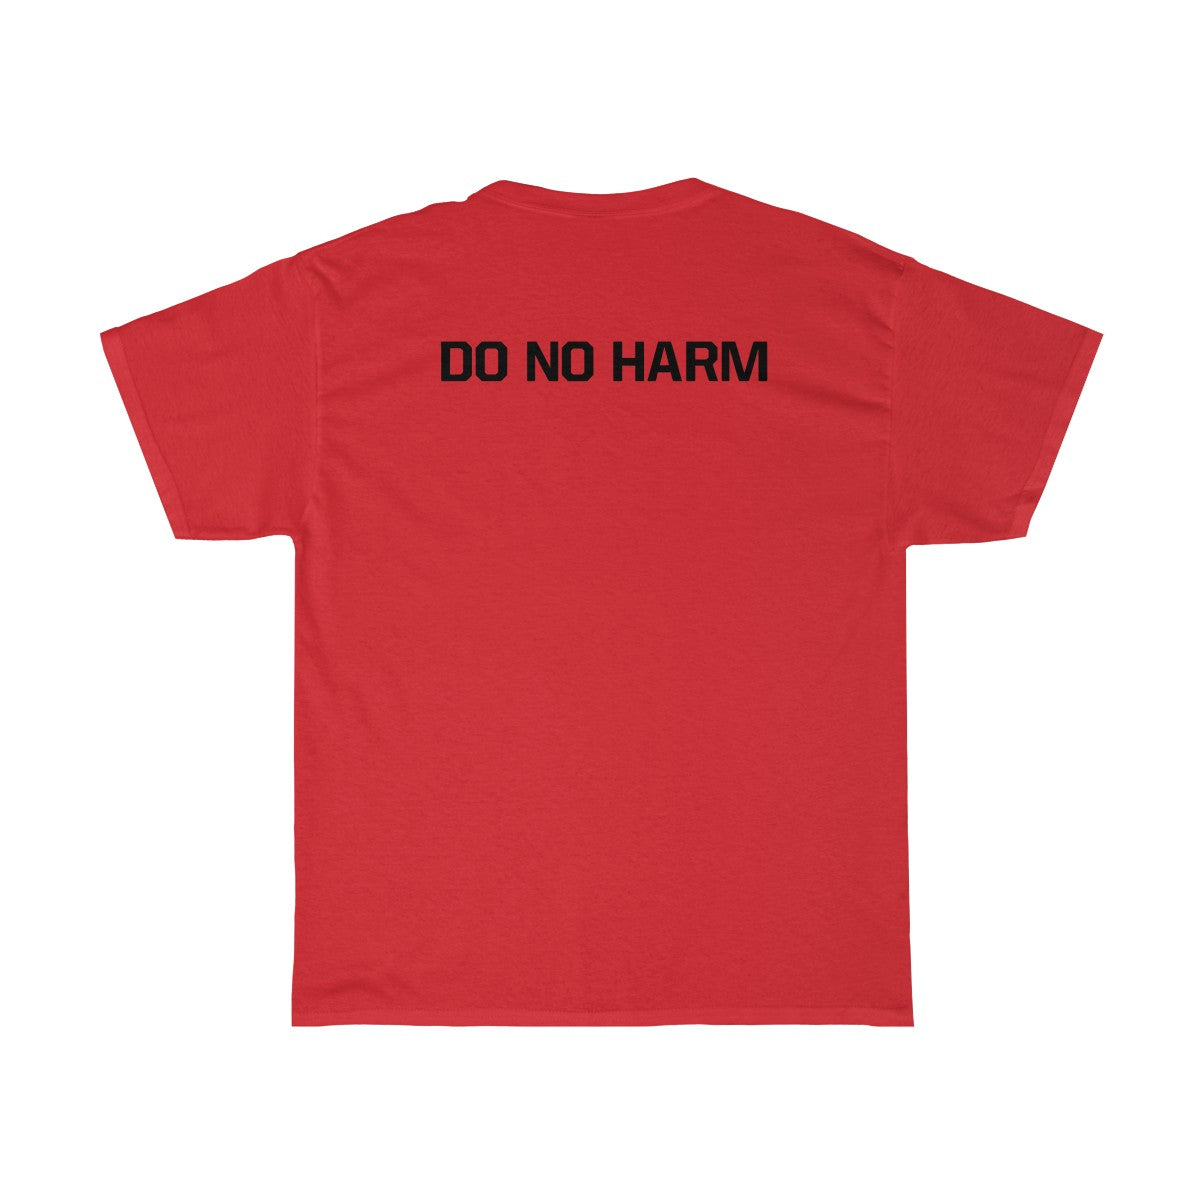 Do No Harm Cotton Tee